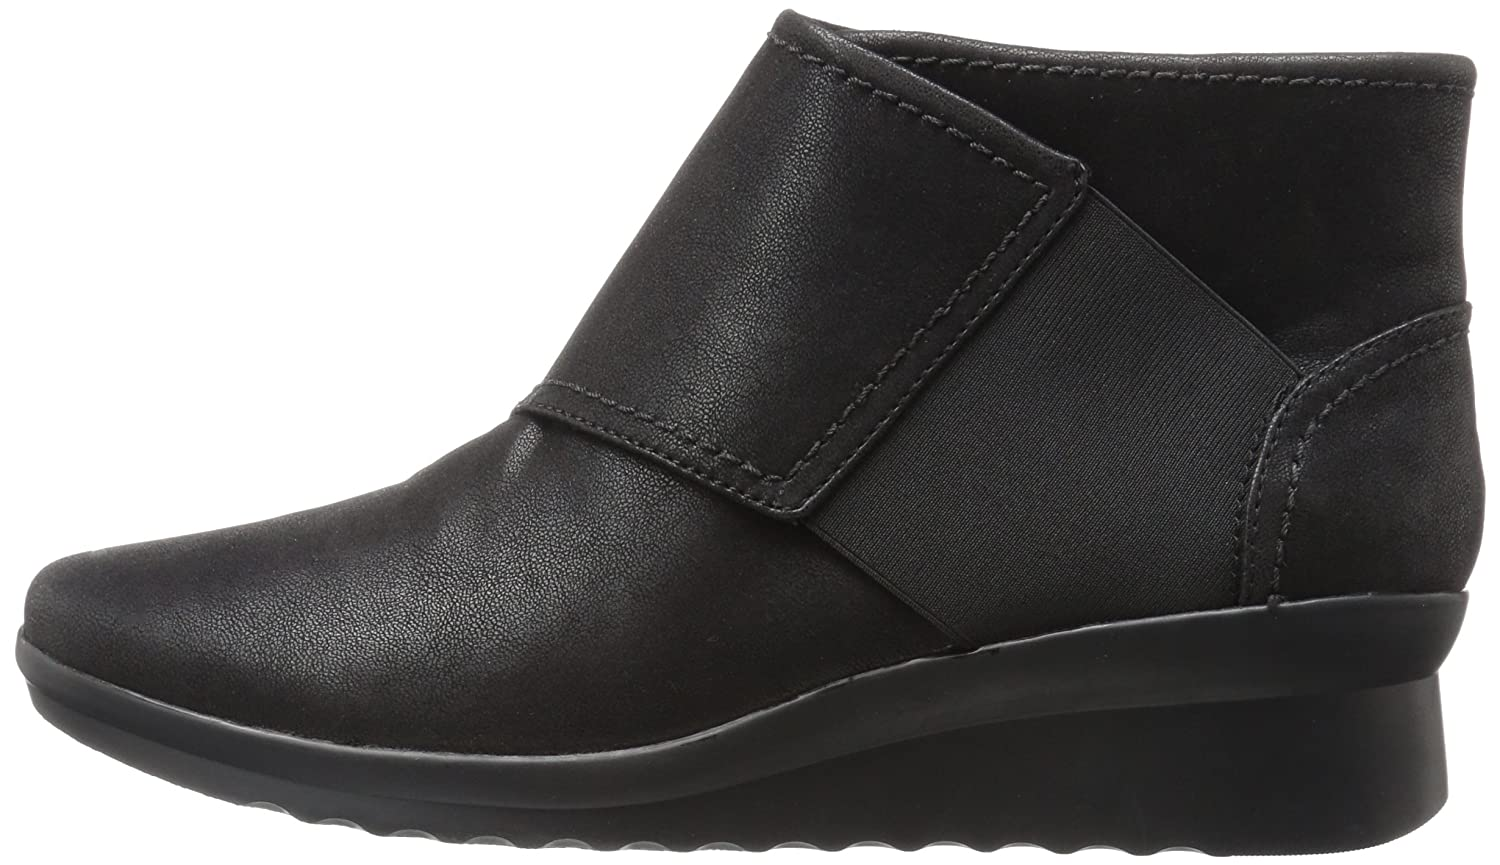 CLARKS Women's Caddell Rush Boot B01N1ZY8TL 12 W US|Black